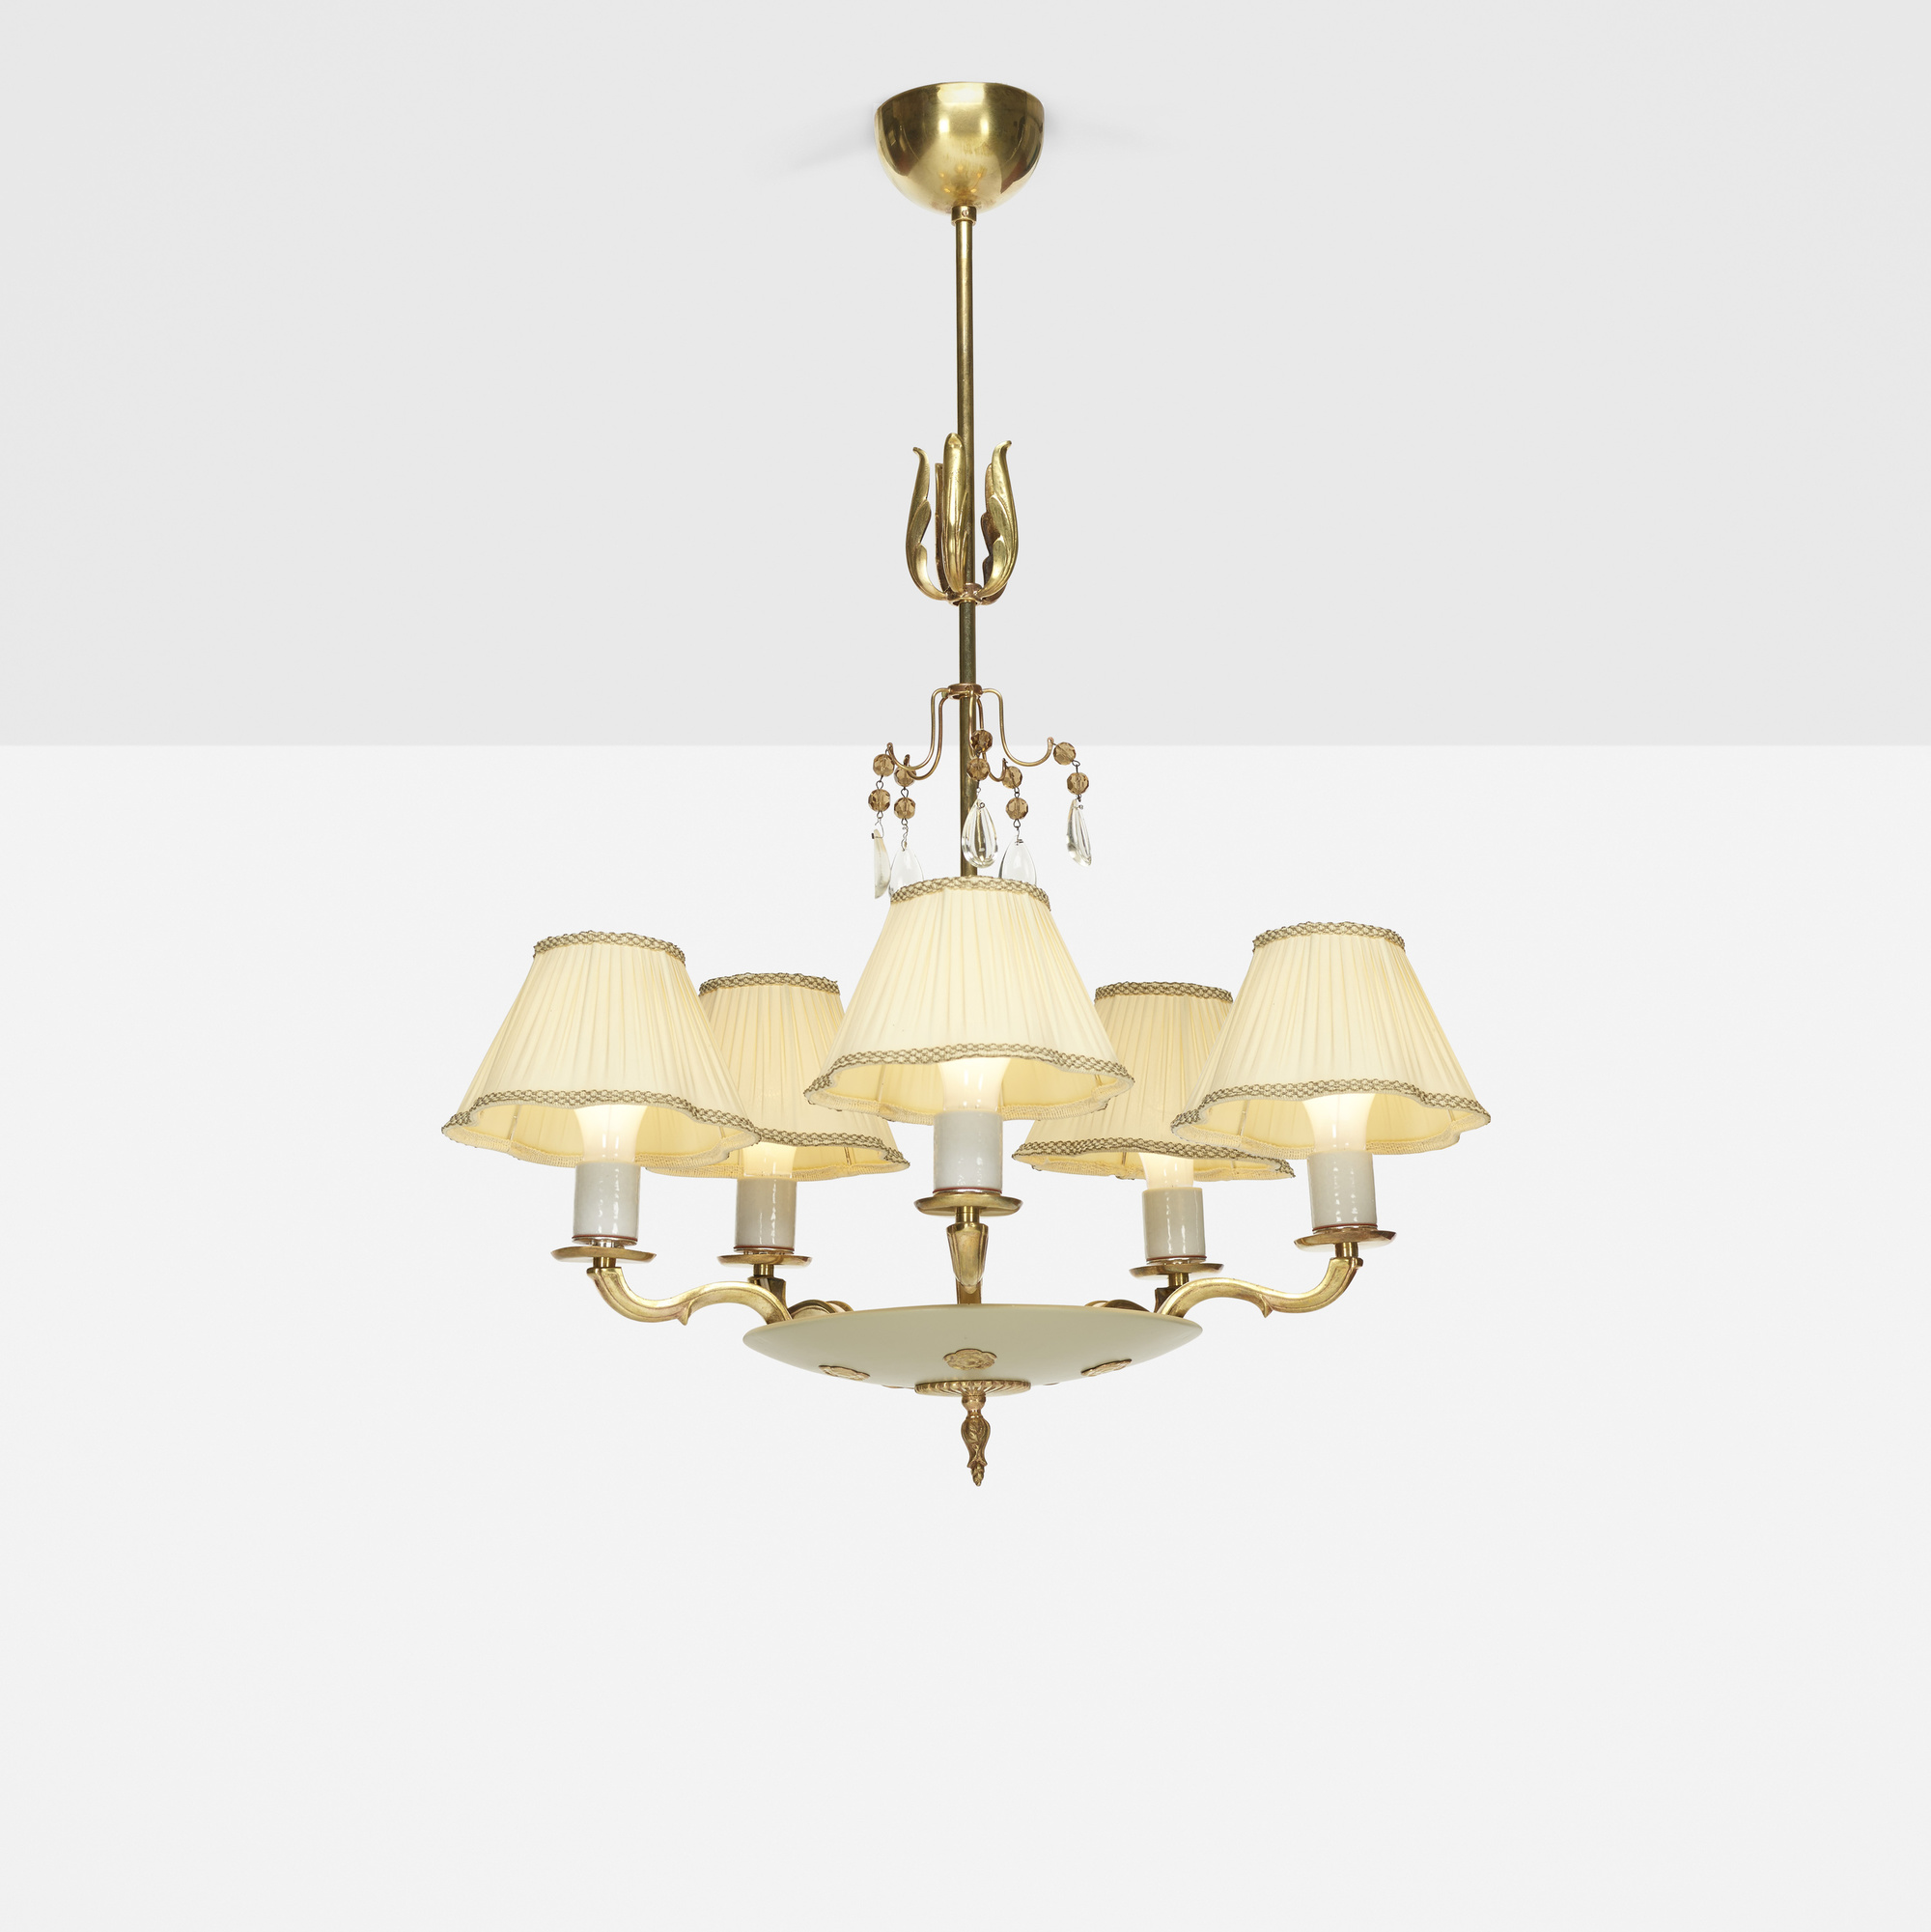 314: Paavo Tynell / chandelier, model 1374 (1 of 2)